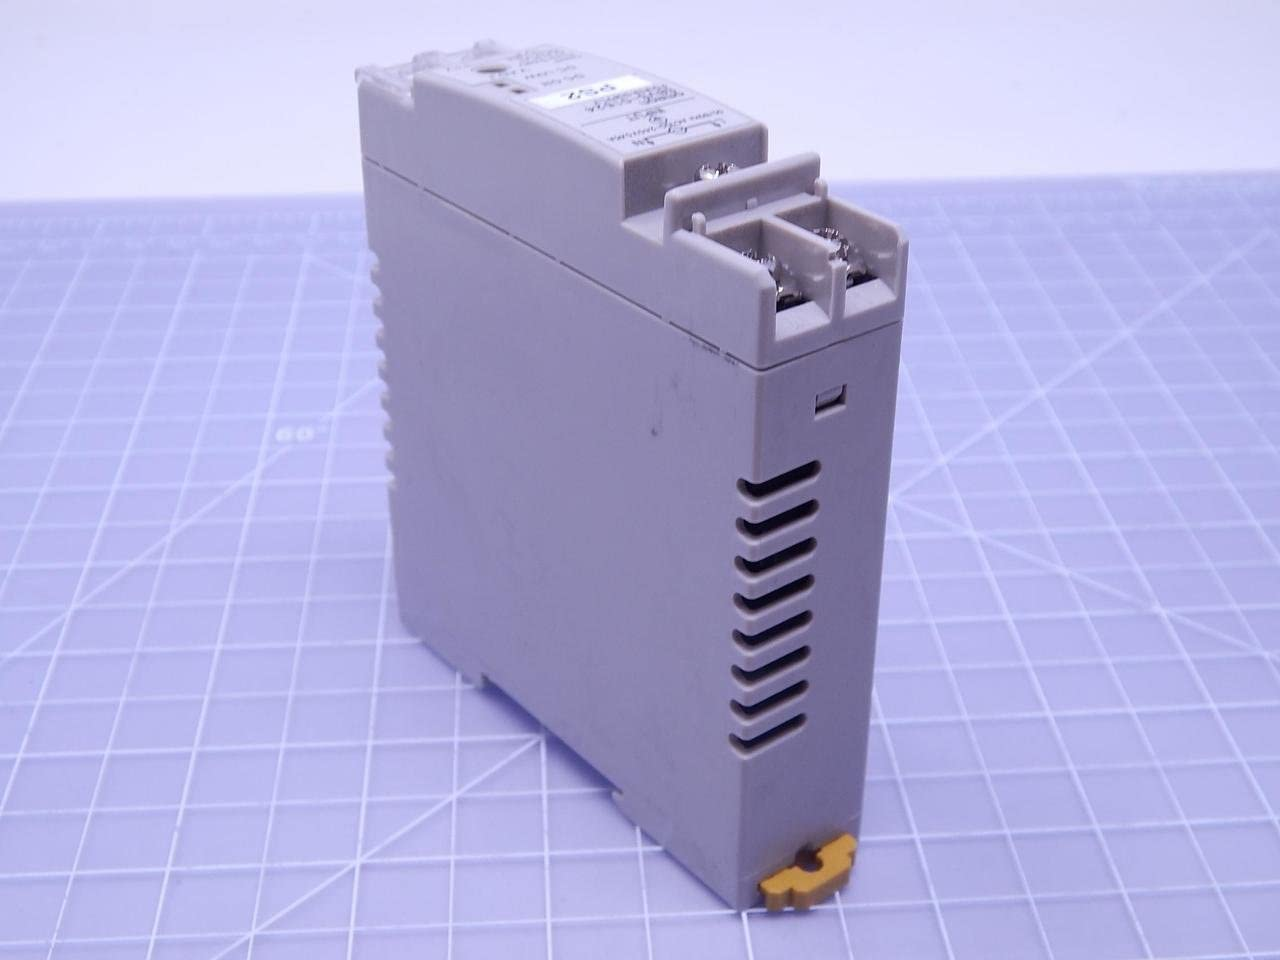 OMRON S8VS-01524 Switch Mode Power Supply Screw terminal 15W DIN Rail mounting type Output 24V 0.65A NN Covered type